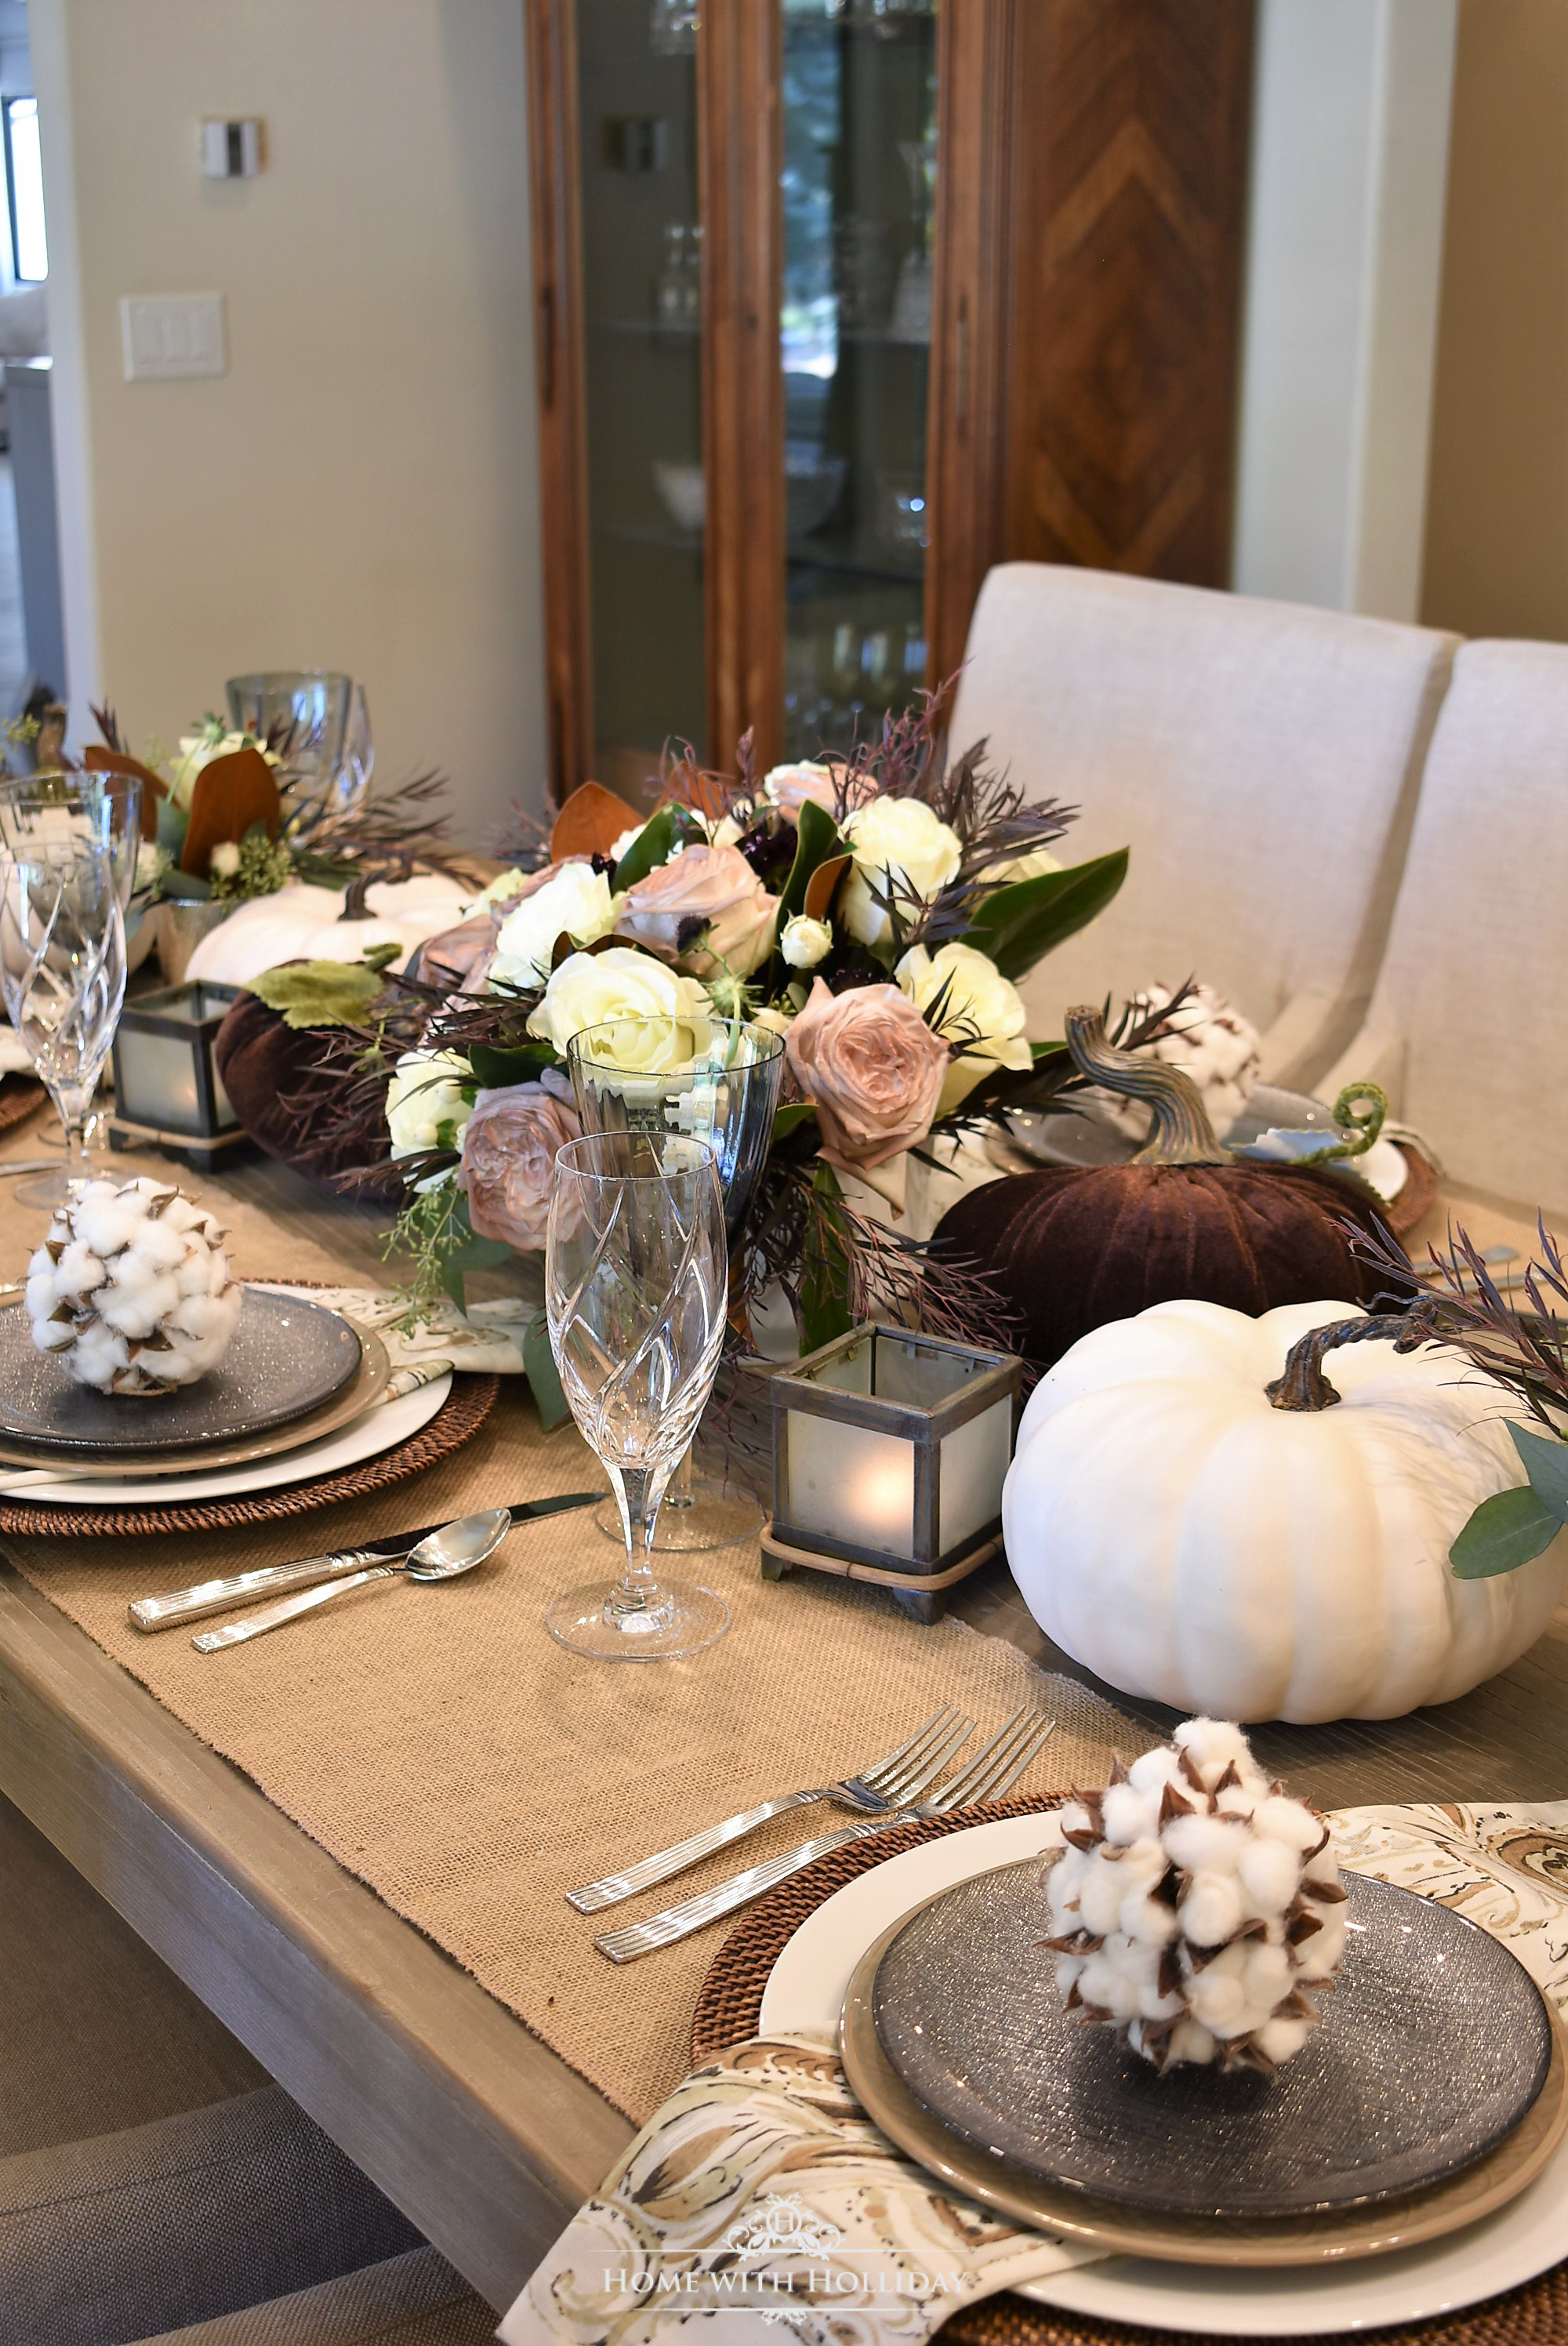 Centerpiece for a Fall Table Setting with Brown and White Pumpkin